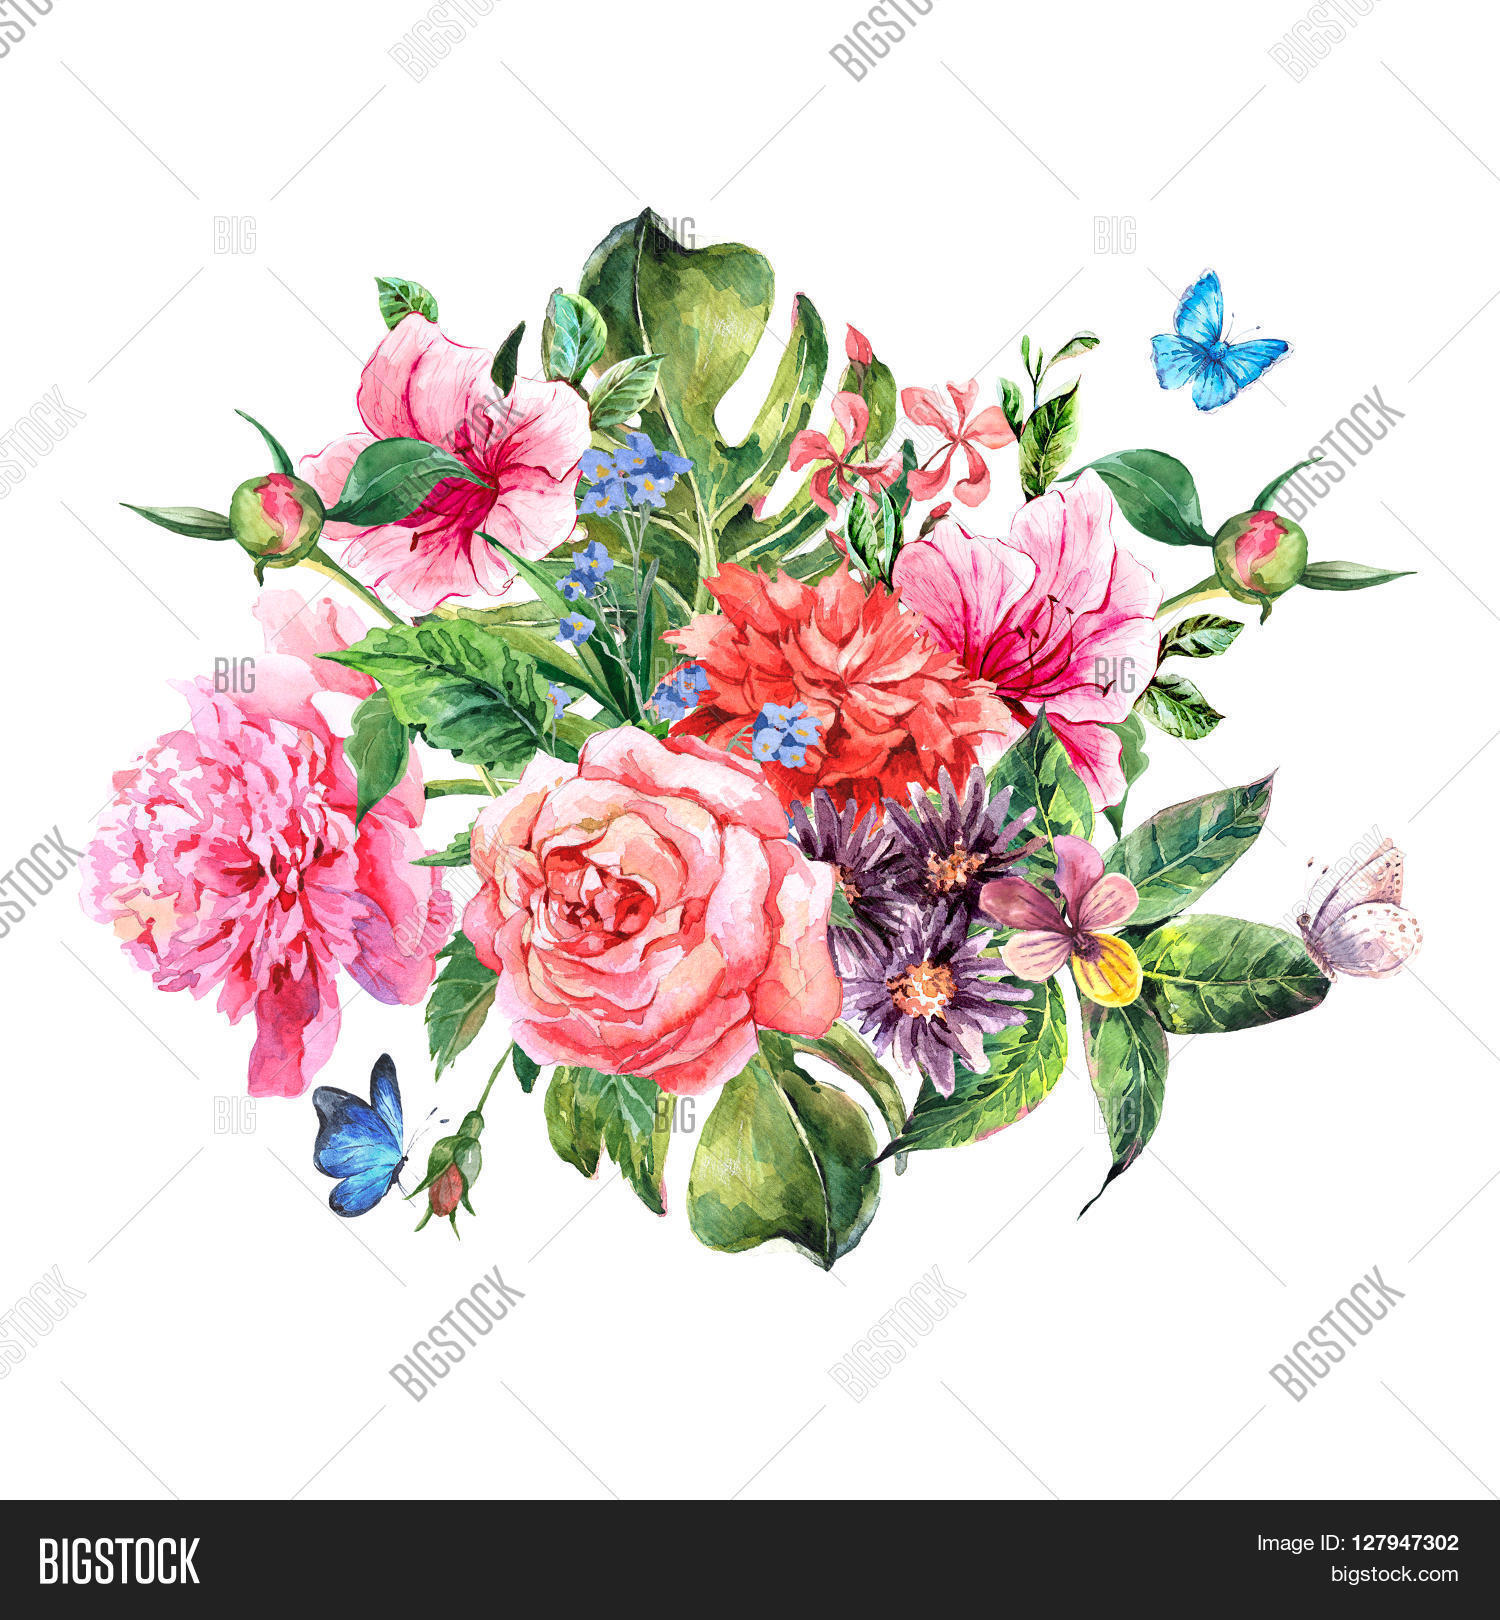 Summer hand drawing watercolor image photo bigstock summer hand drawing watercolor floral greeting card with blooming flowers peonies roses daisies ccuart Image collections